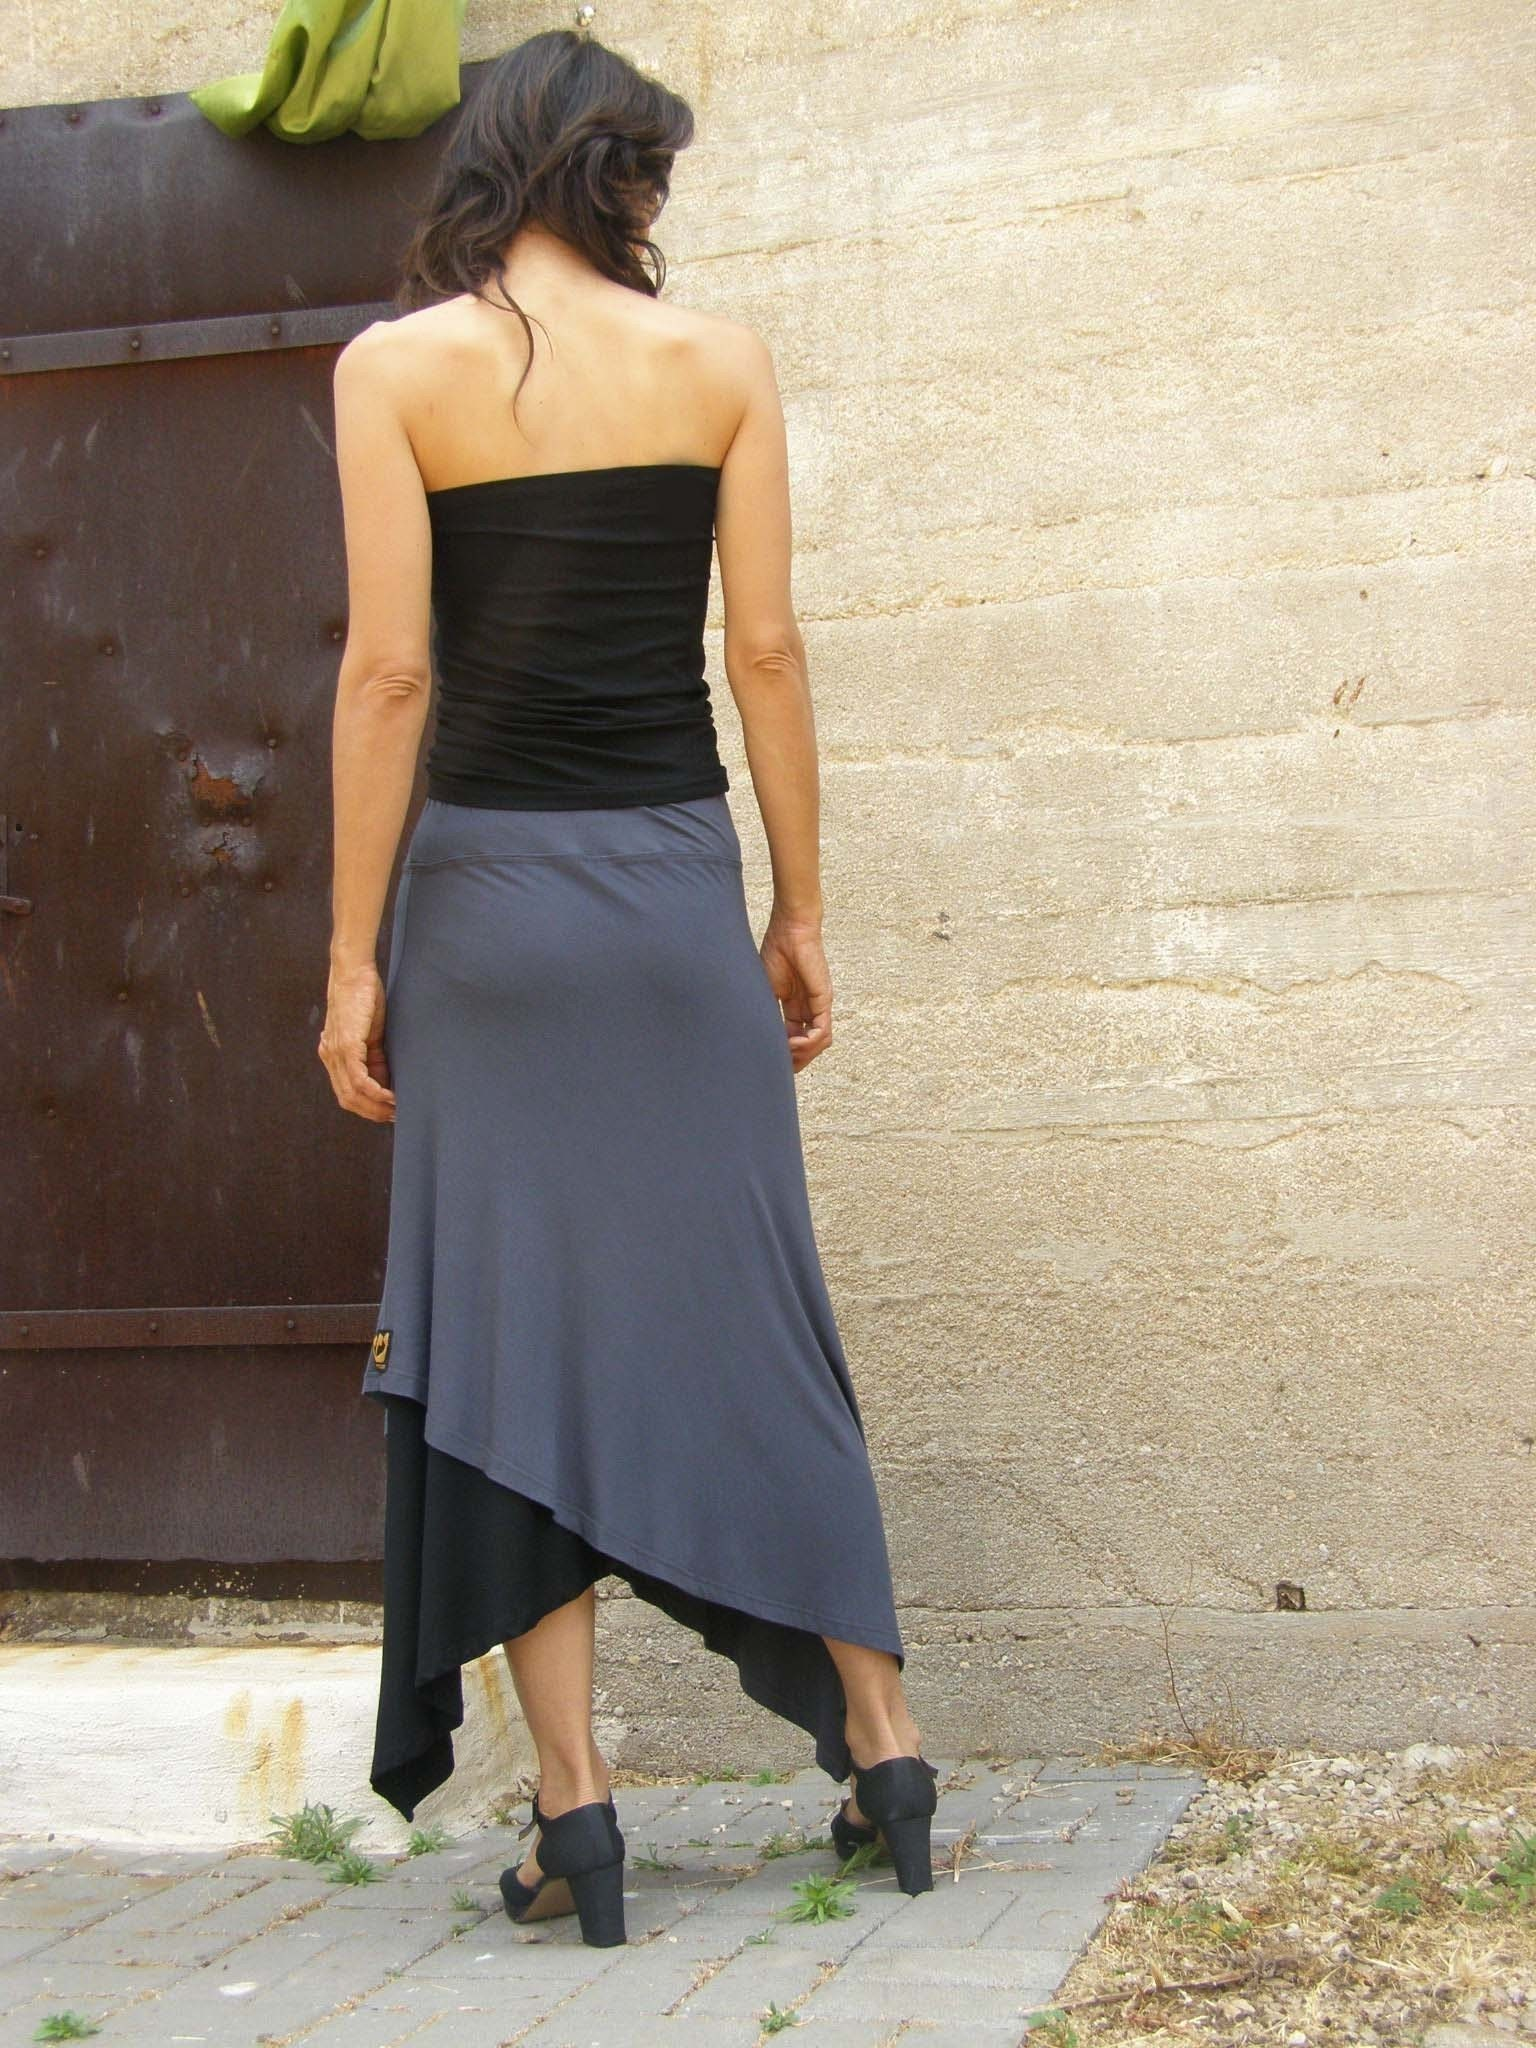 Diagonal womens skirt-Convertible skirt-Maxi skirt-Asymmetric